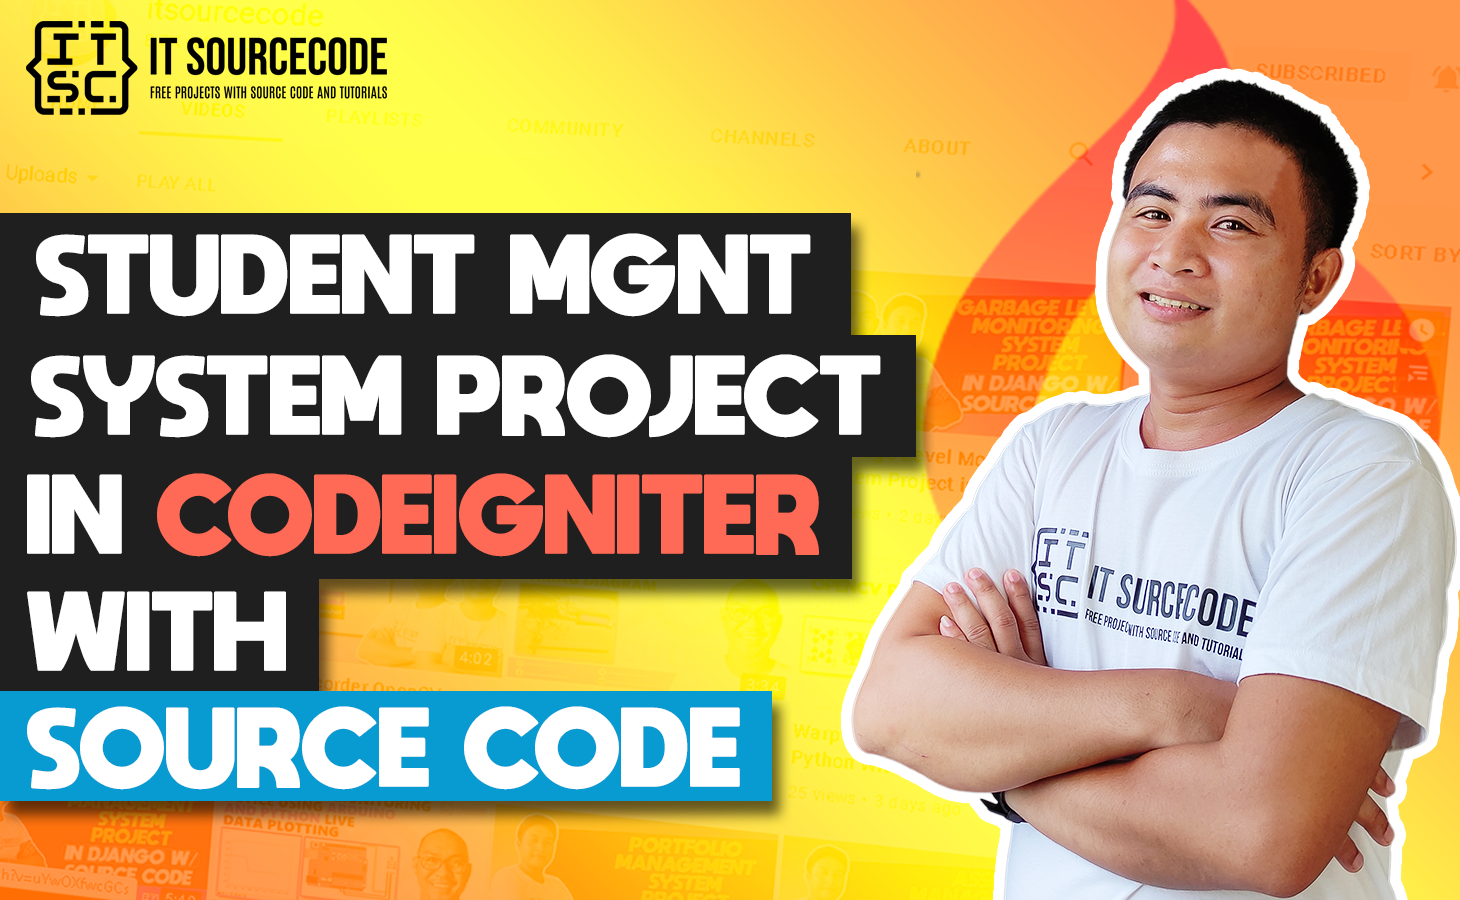 Student Management System Project In CodeIgniter With Source Code